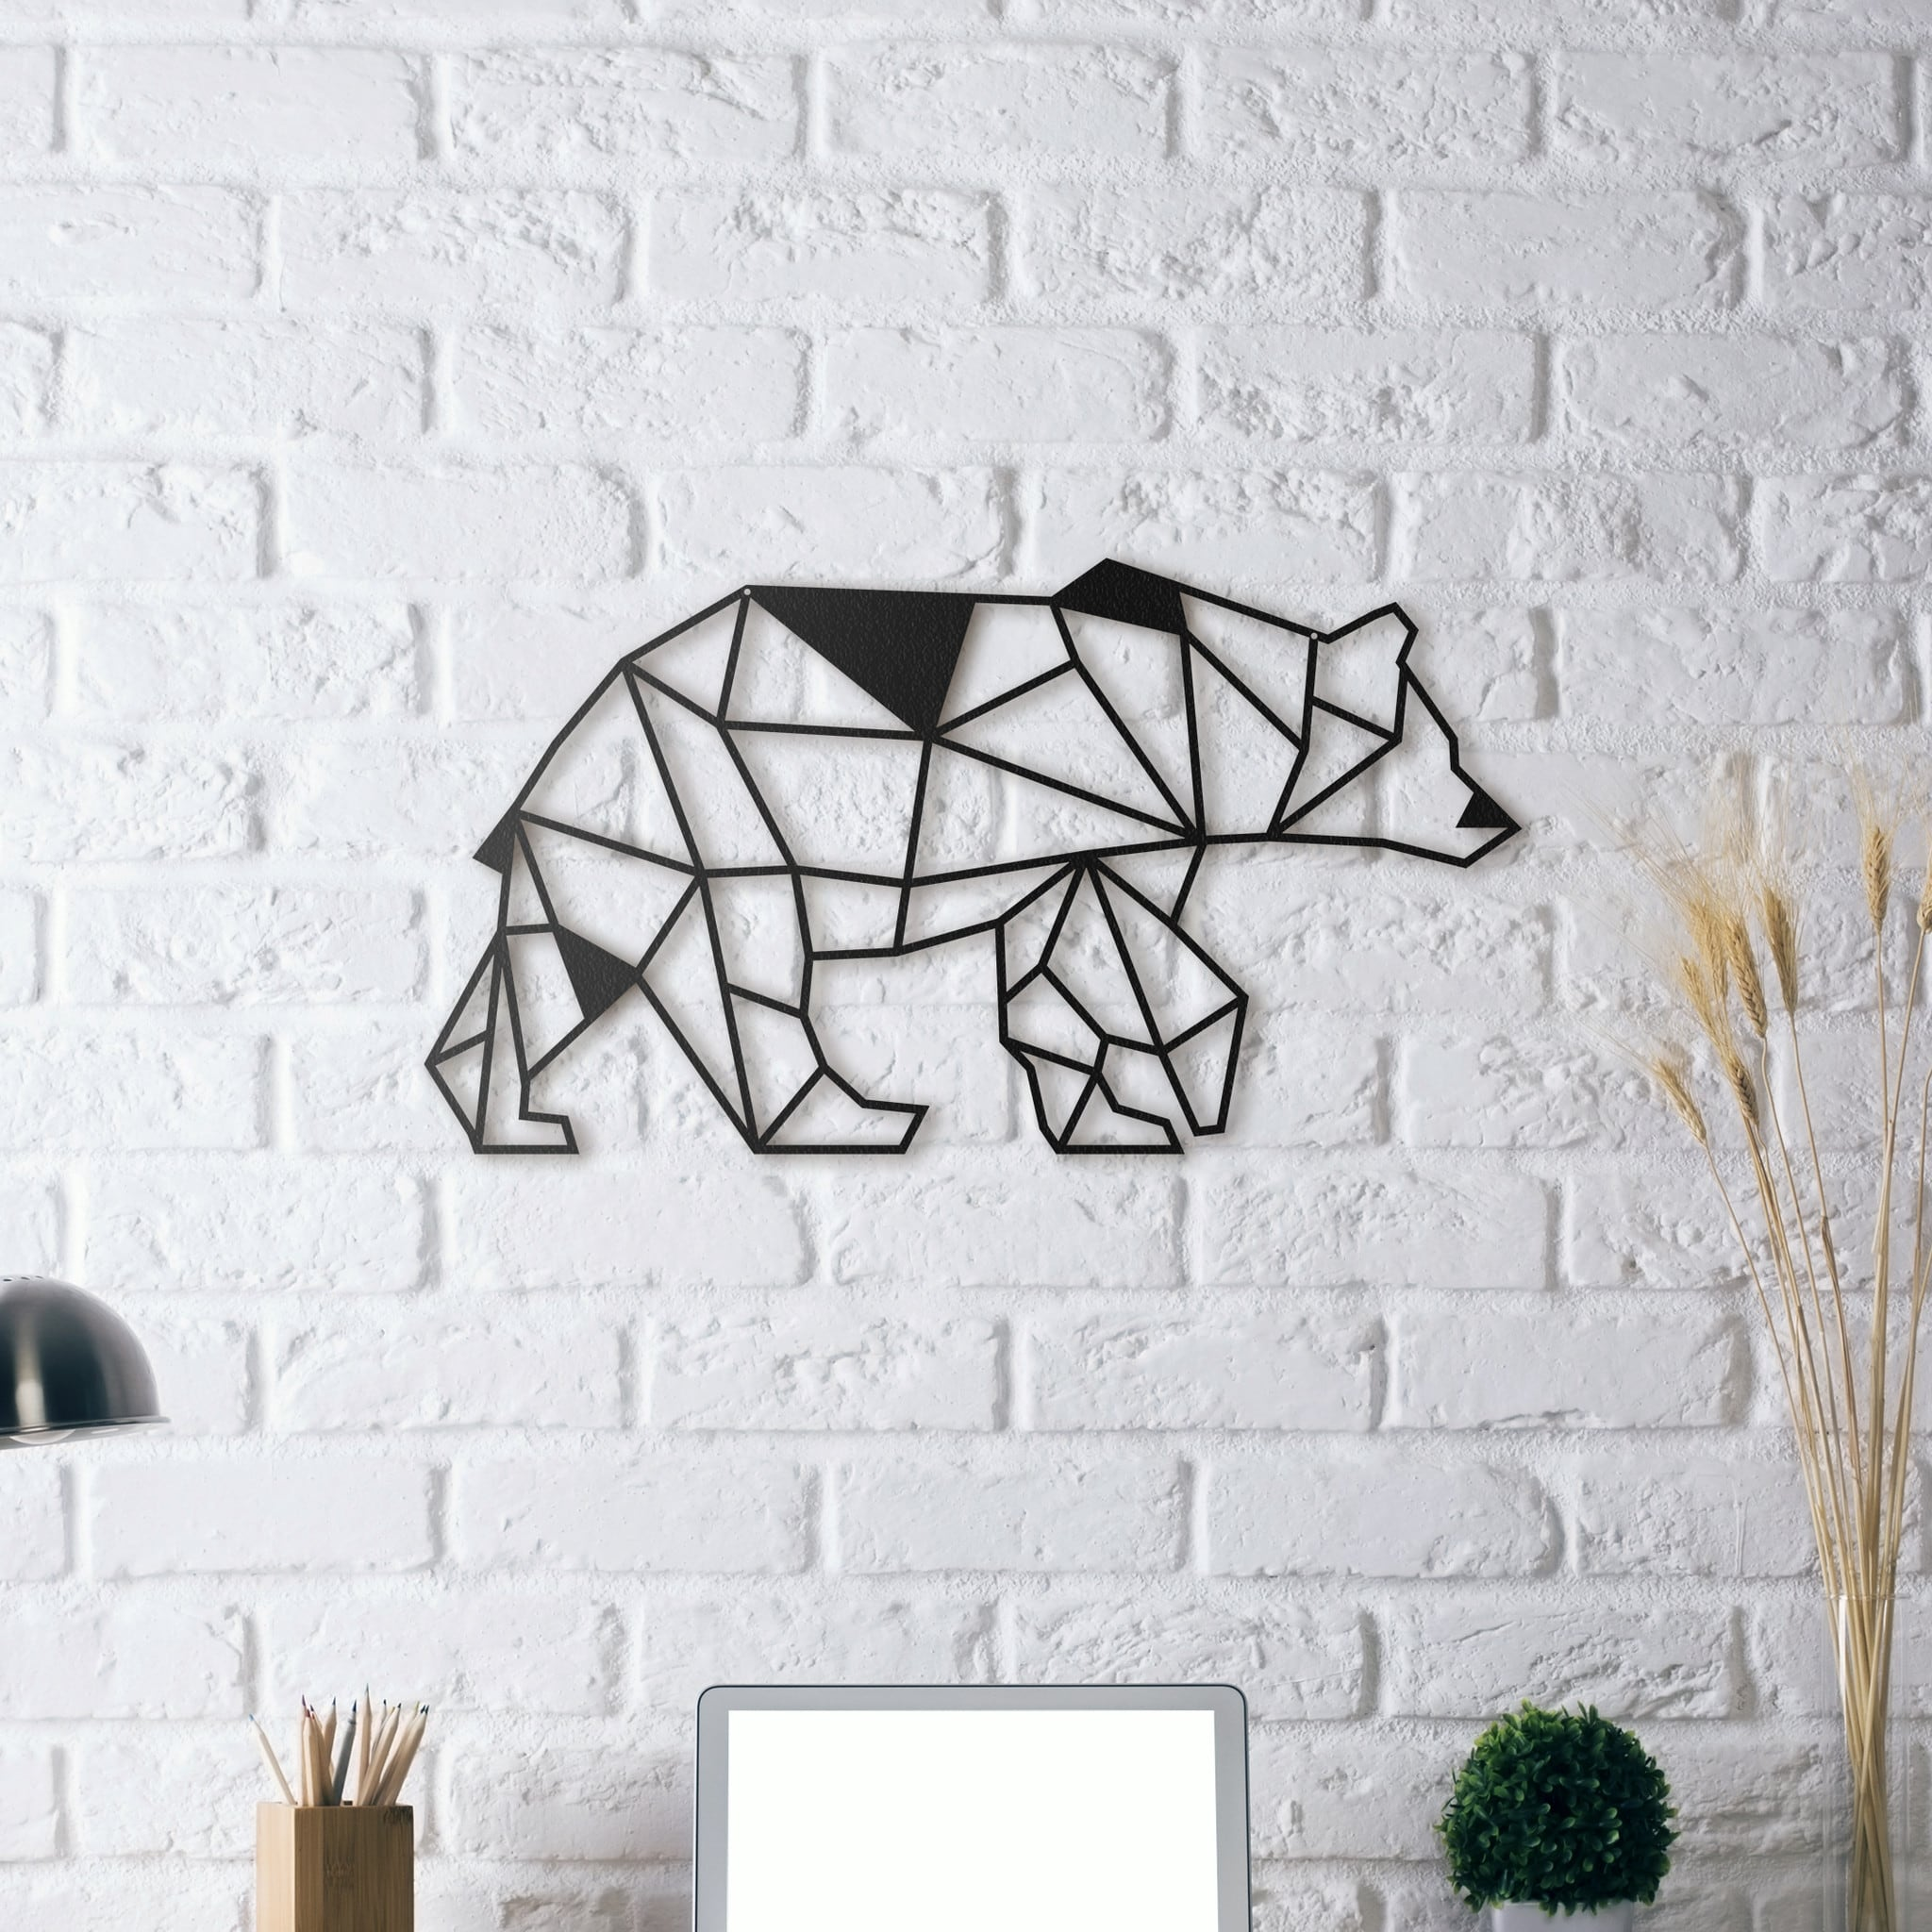 Design metal wall decoration of a bear to have a nature interior with a modern touch